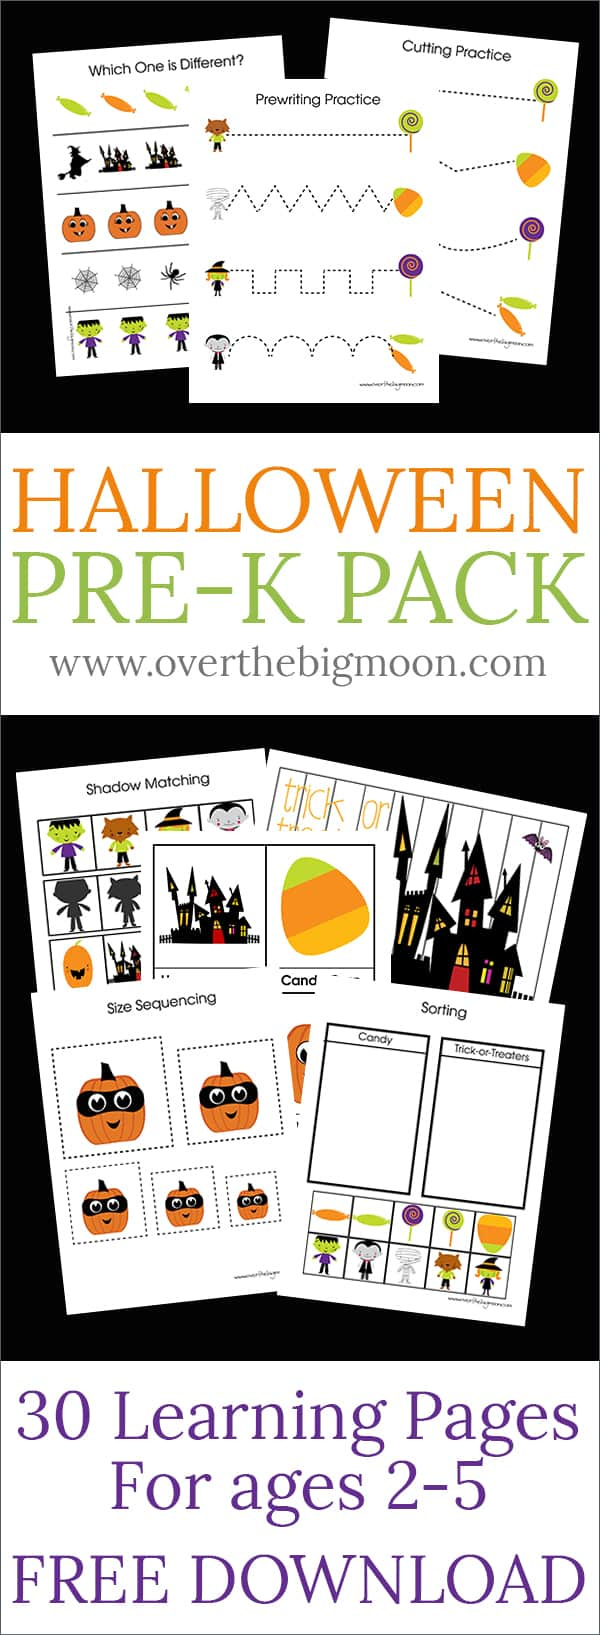 FREE Halloween Pre-K Pack - 30 pages of Halloween learning and fun for ages 2-5! Download your pack today! From www.overthebigmoon.com!